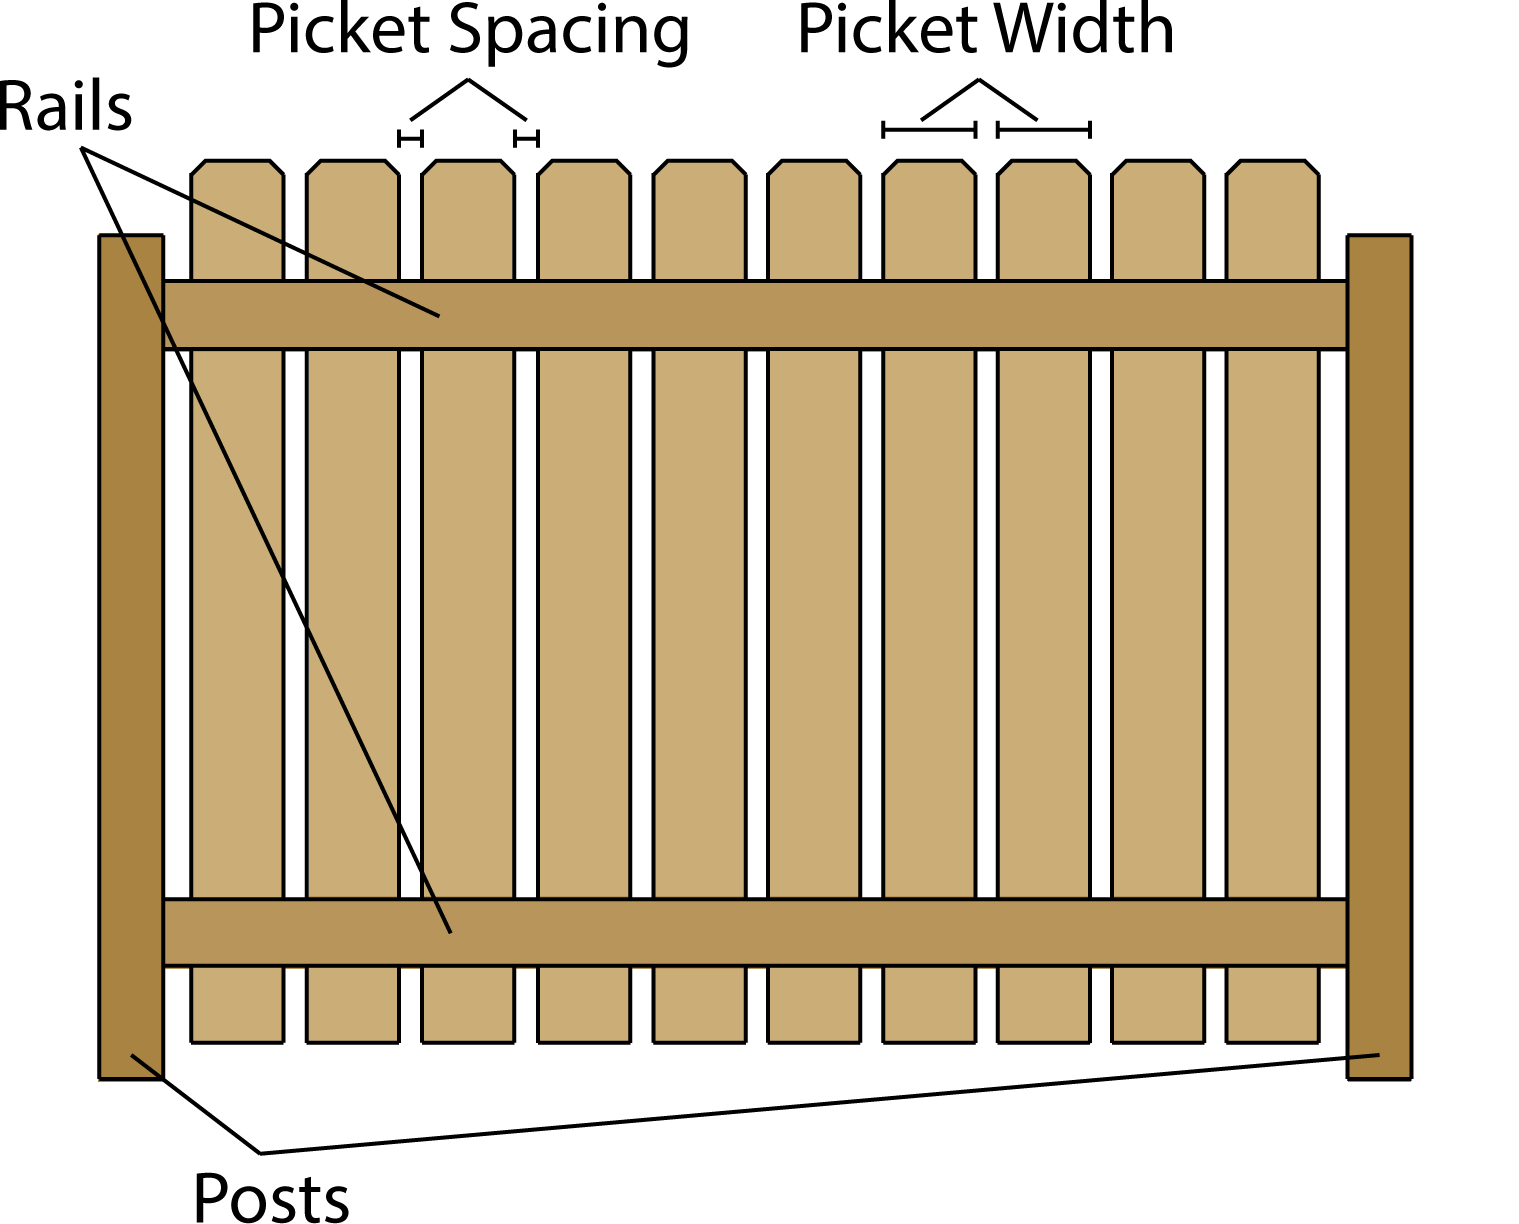 Illustration showing the difference components of a privacy fence, including the posts, rails, pickets, and picket spacing